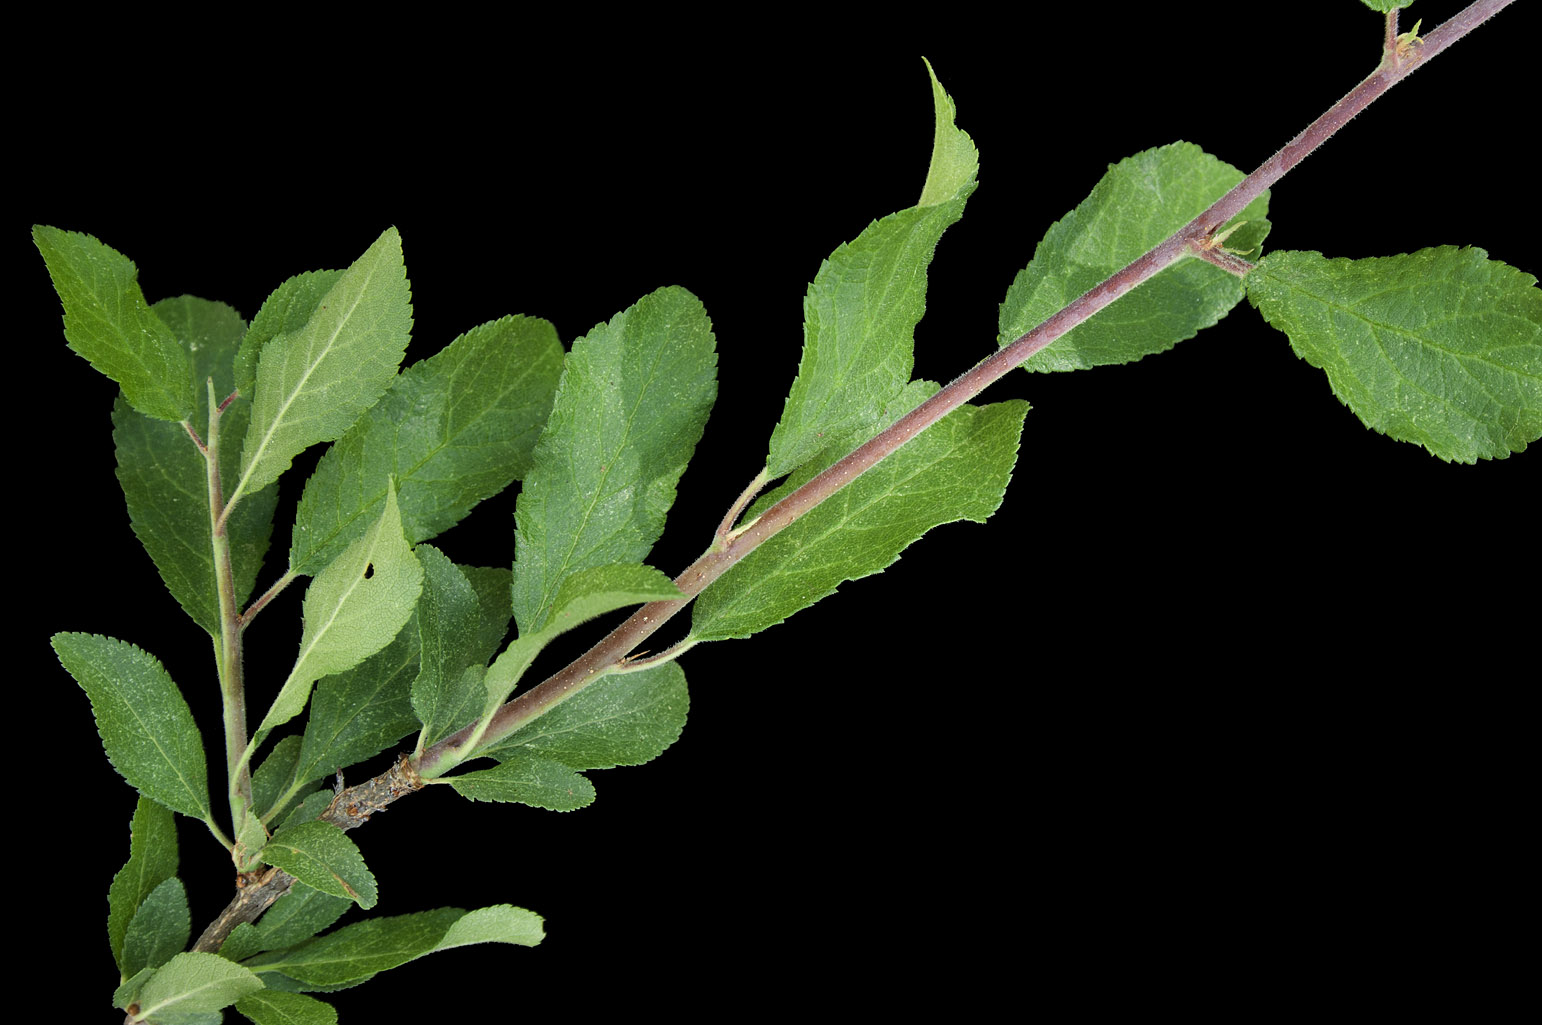 Branch with elliptic or obovate leaves with finely serrate margins, some of which still have stipules; the branchlet on the left is still green but will turn into a hard, sharp thorn when it becomes lignified